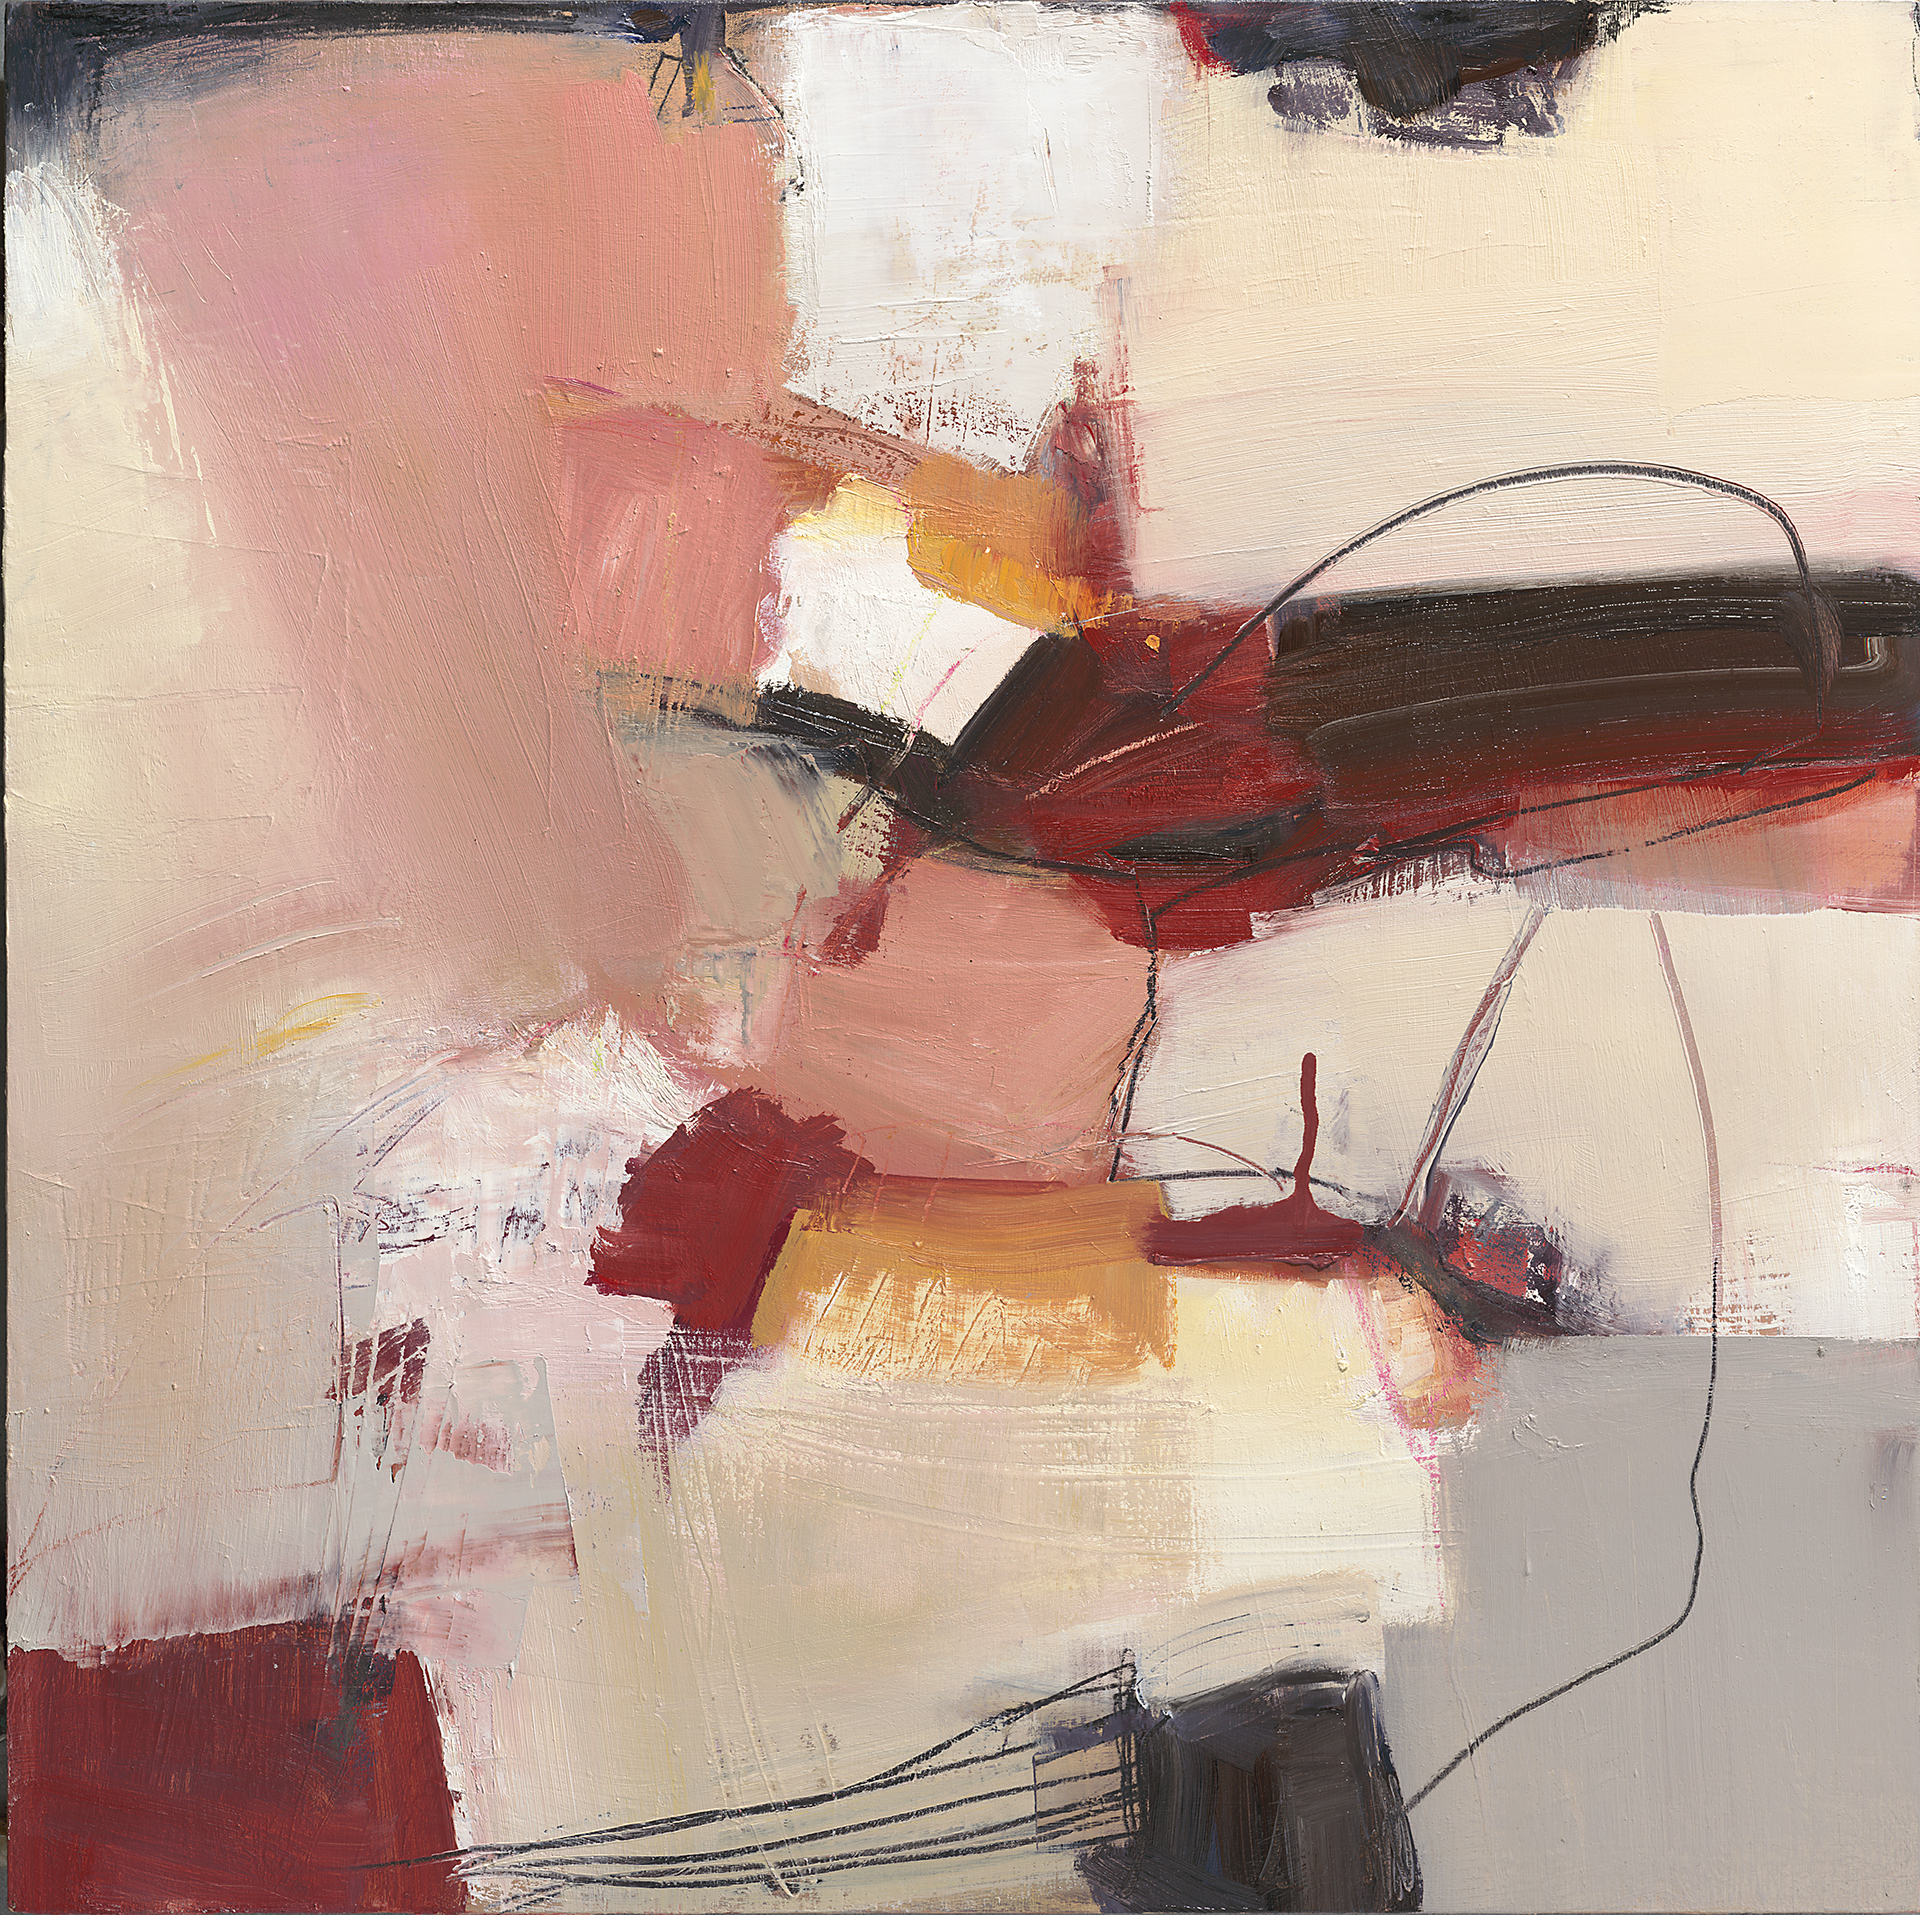 Pink and red abstract oil painting evoking the riotous movement of Spring bursting into bloom.